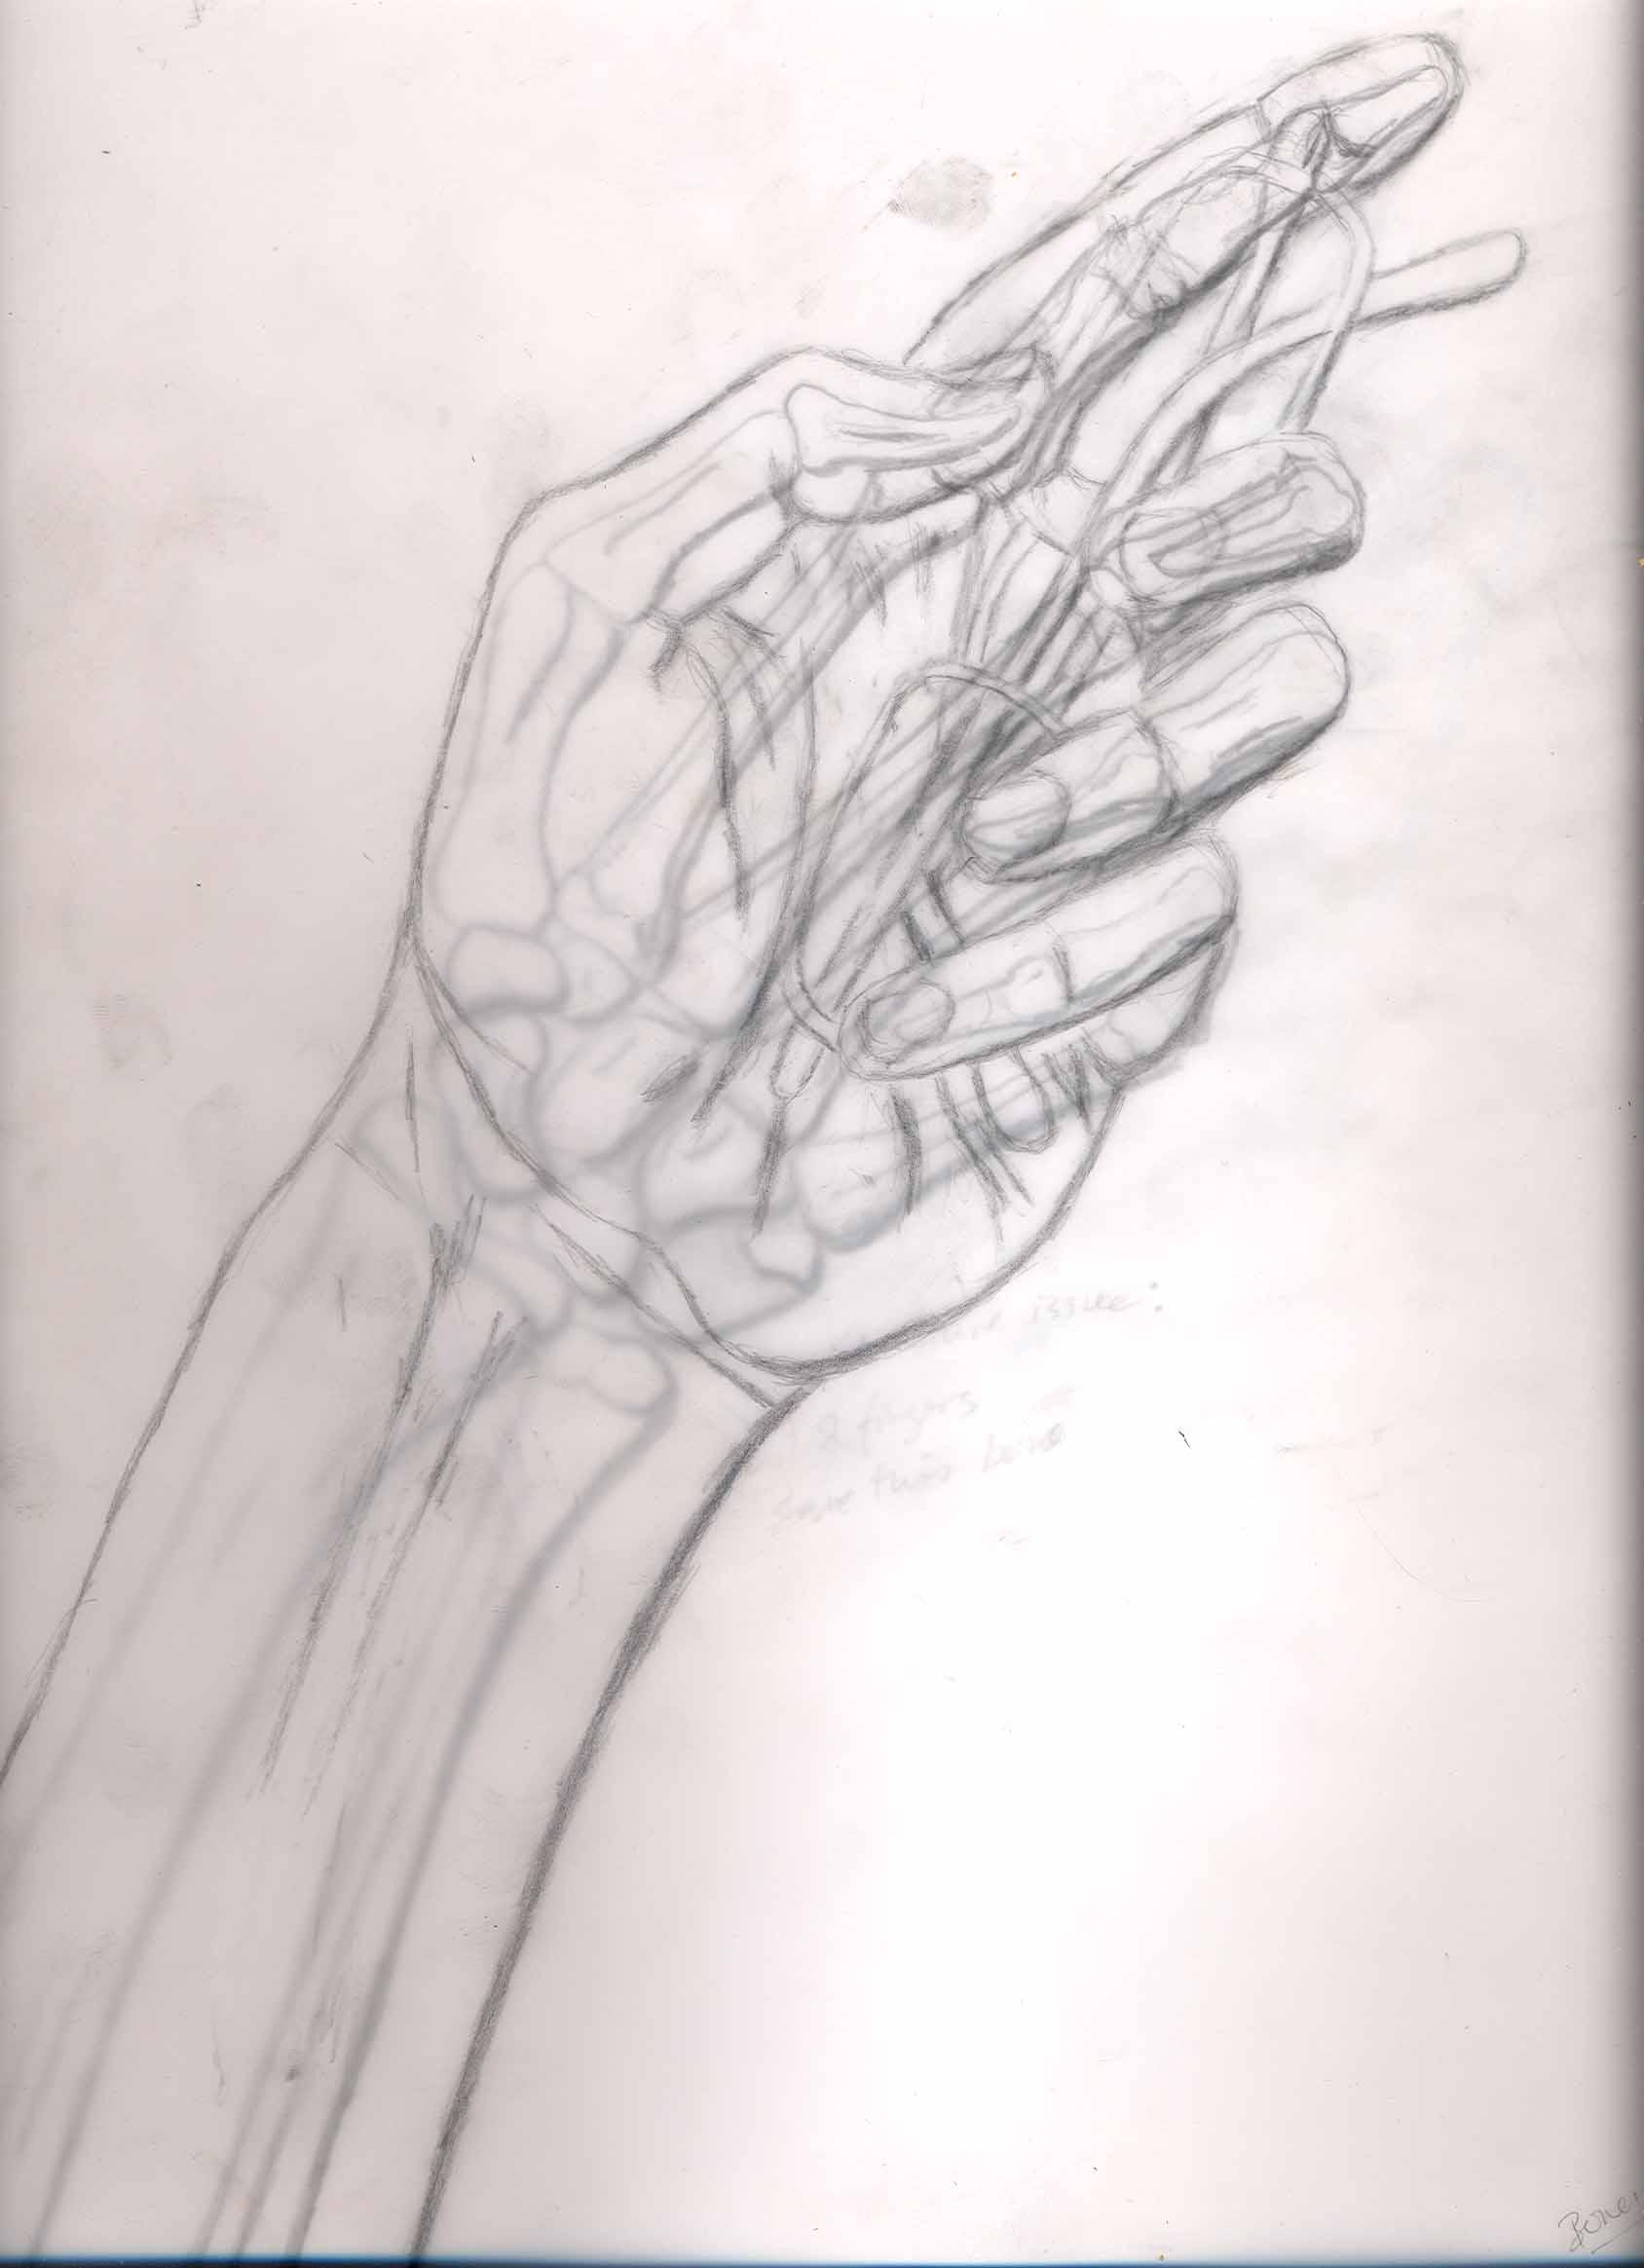 My hand holding my glasses by arkainmon on deviantart for Hand holding a rose drawing